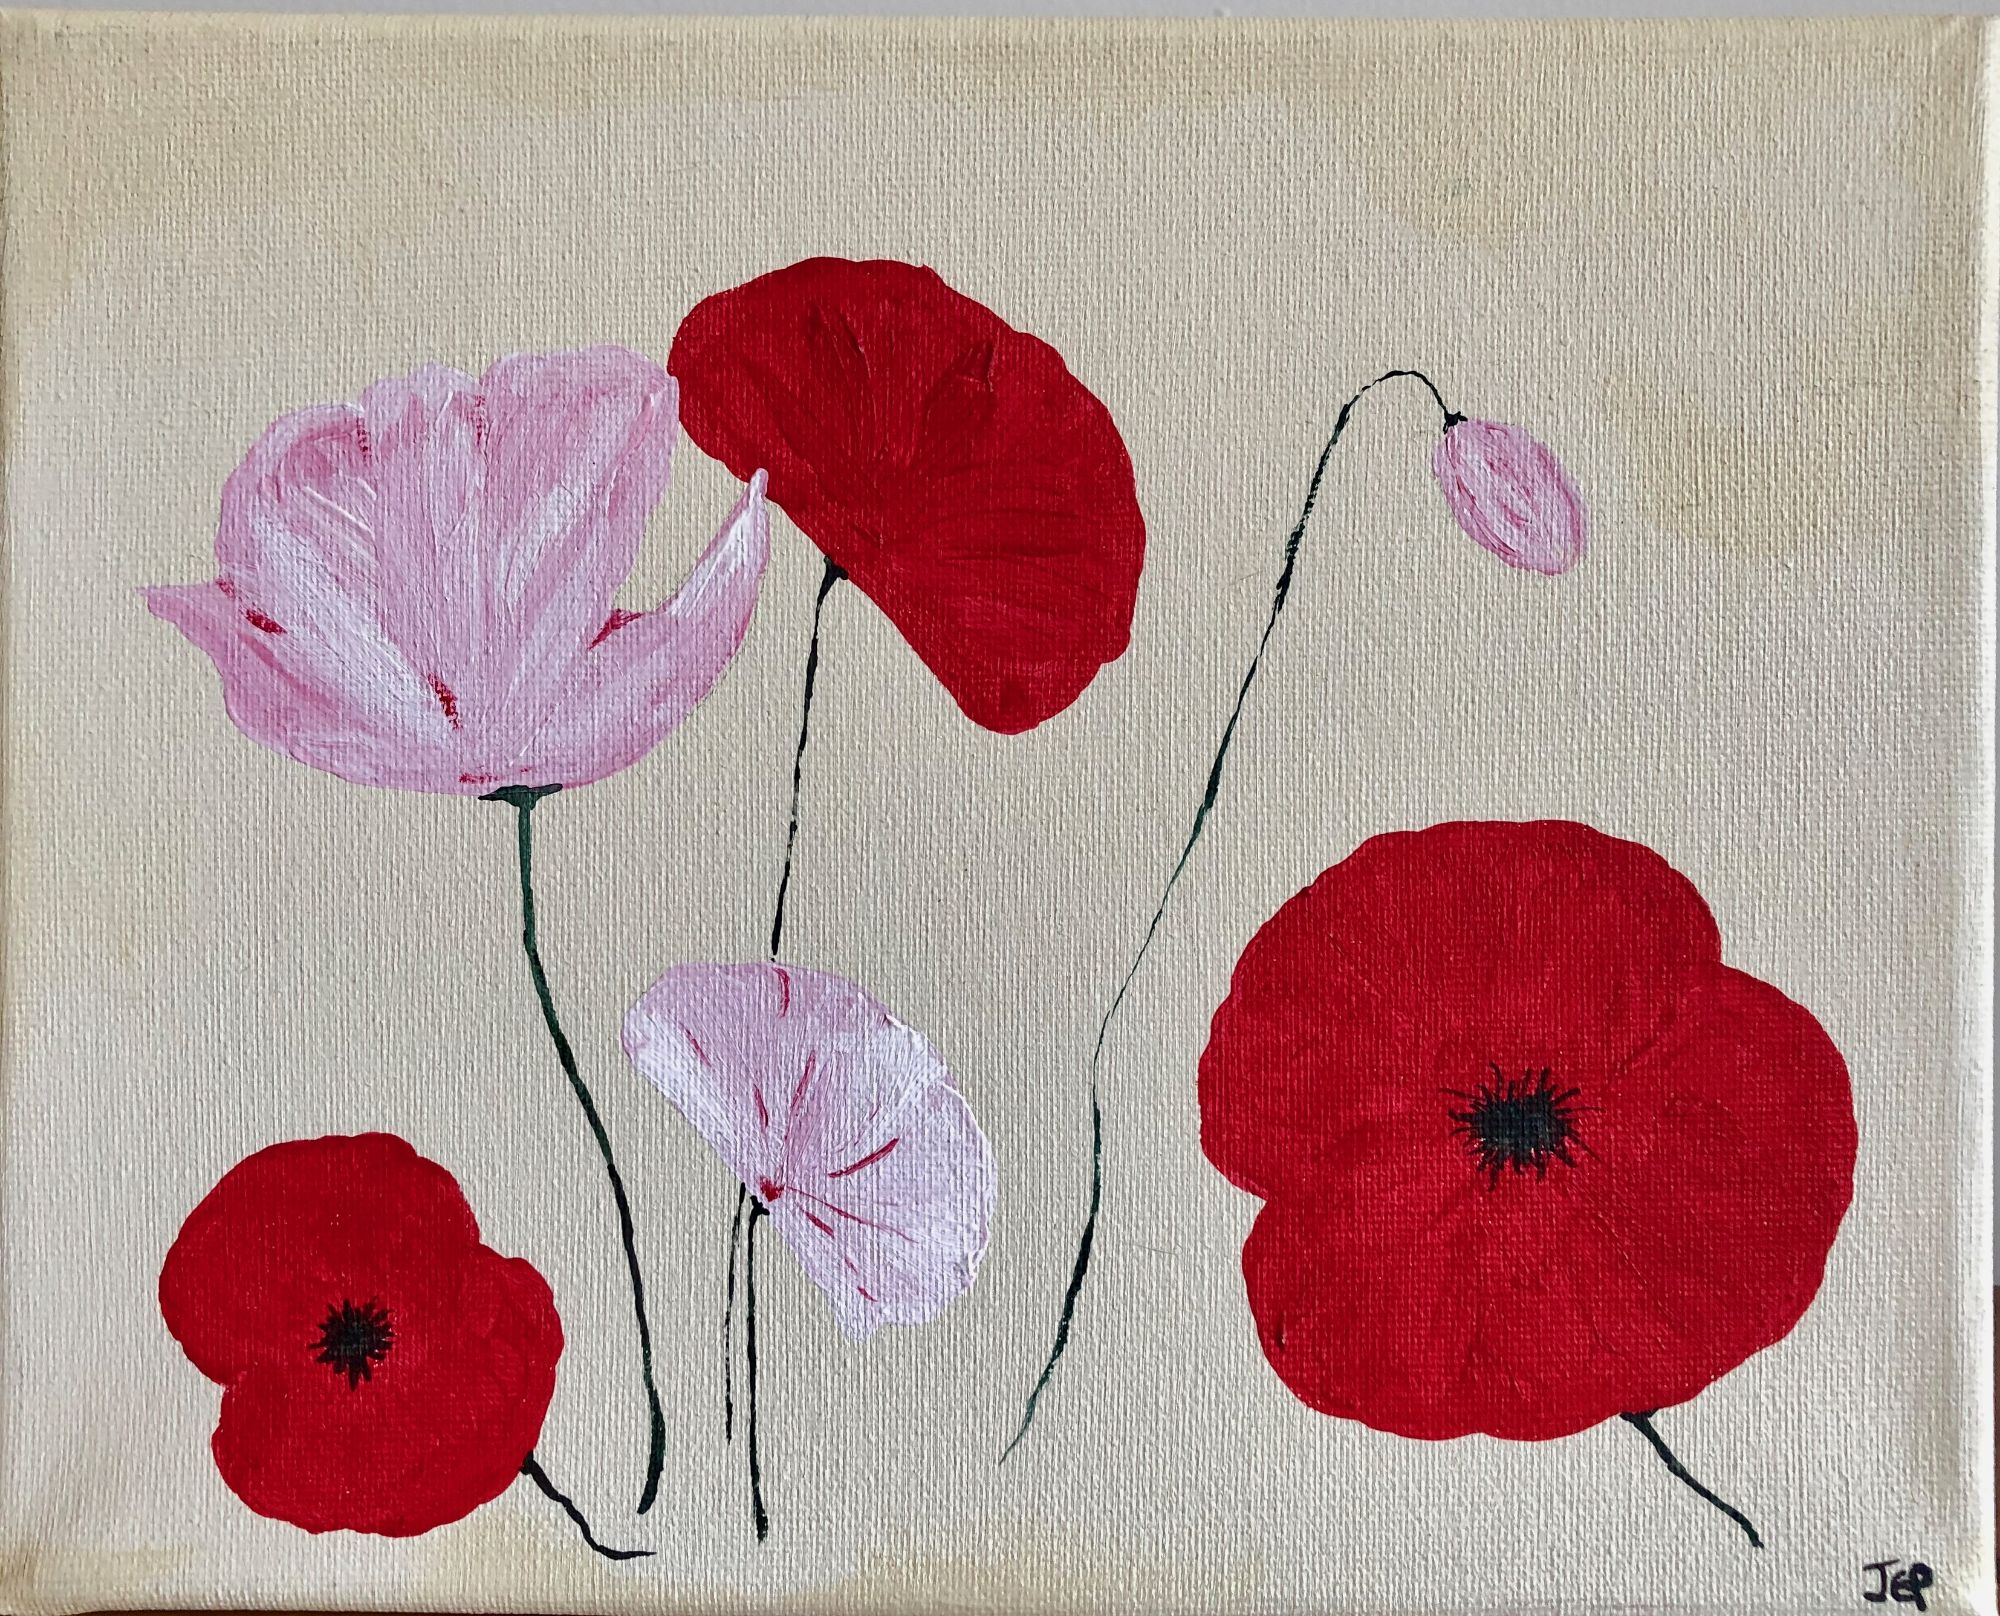 Lest We Forget   ________________________________ acrylic on stretched canvas  (20.5cm x 25.5cm)           £20